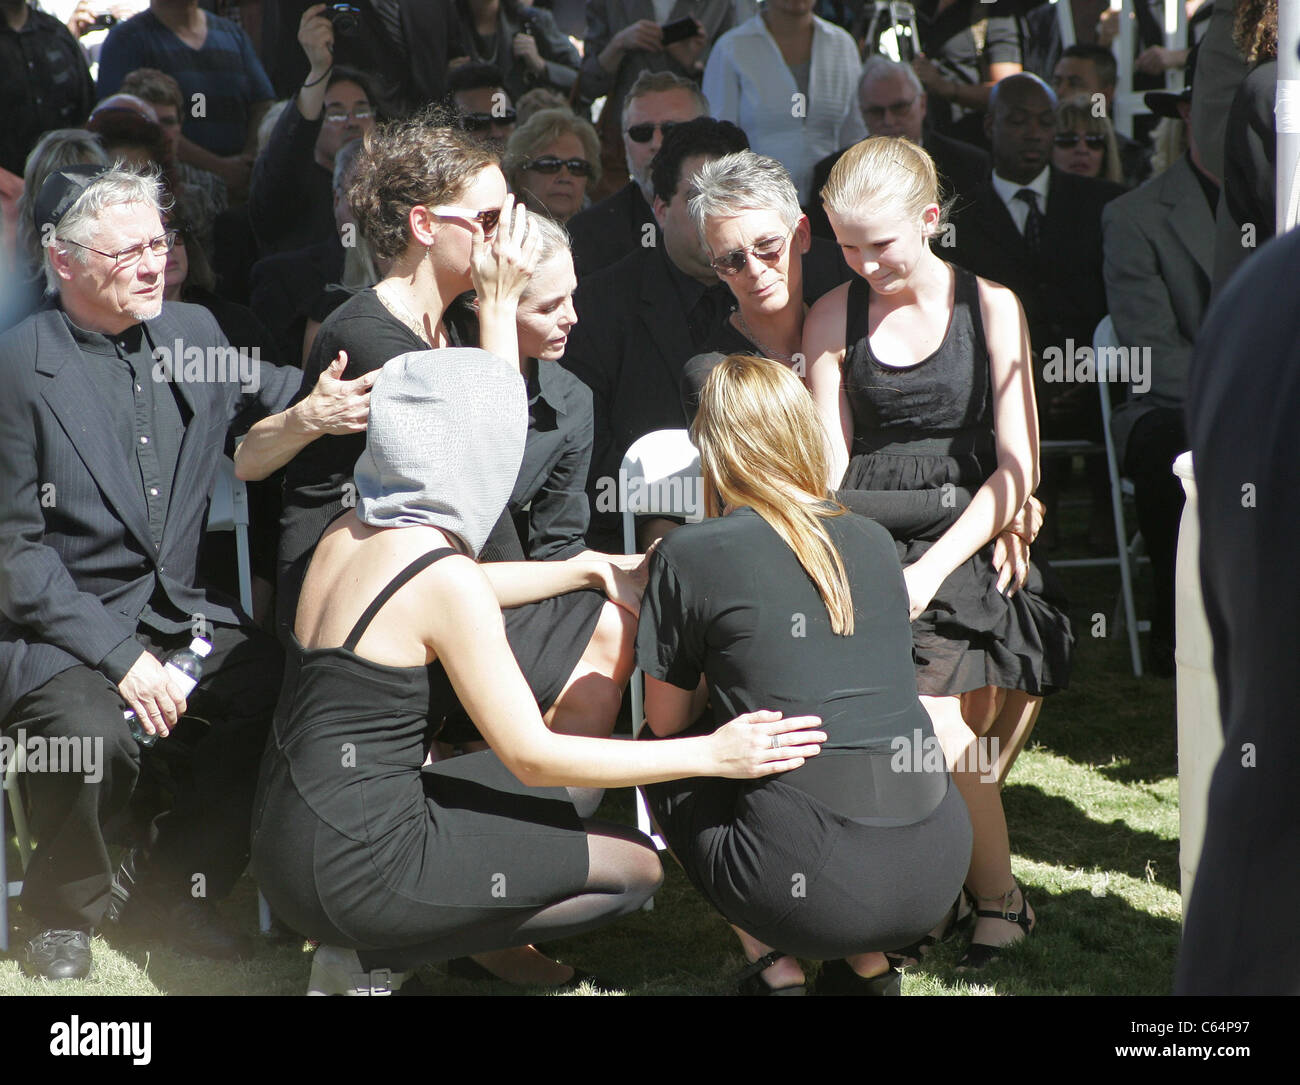 jaime lee curtis at a public appearance for funeral services for